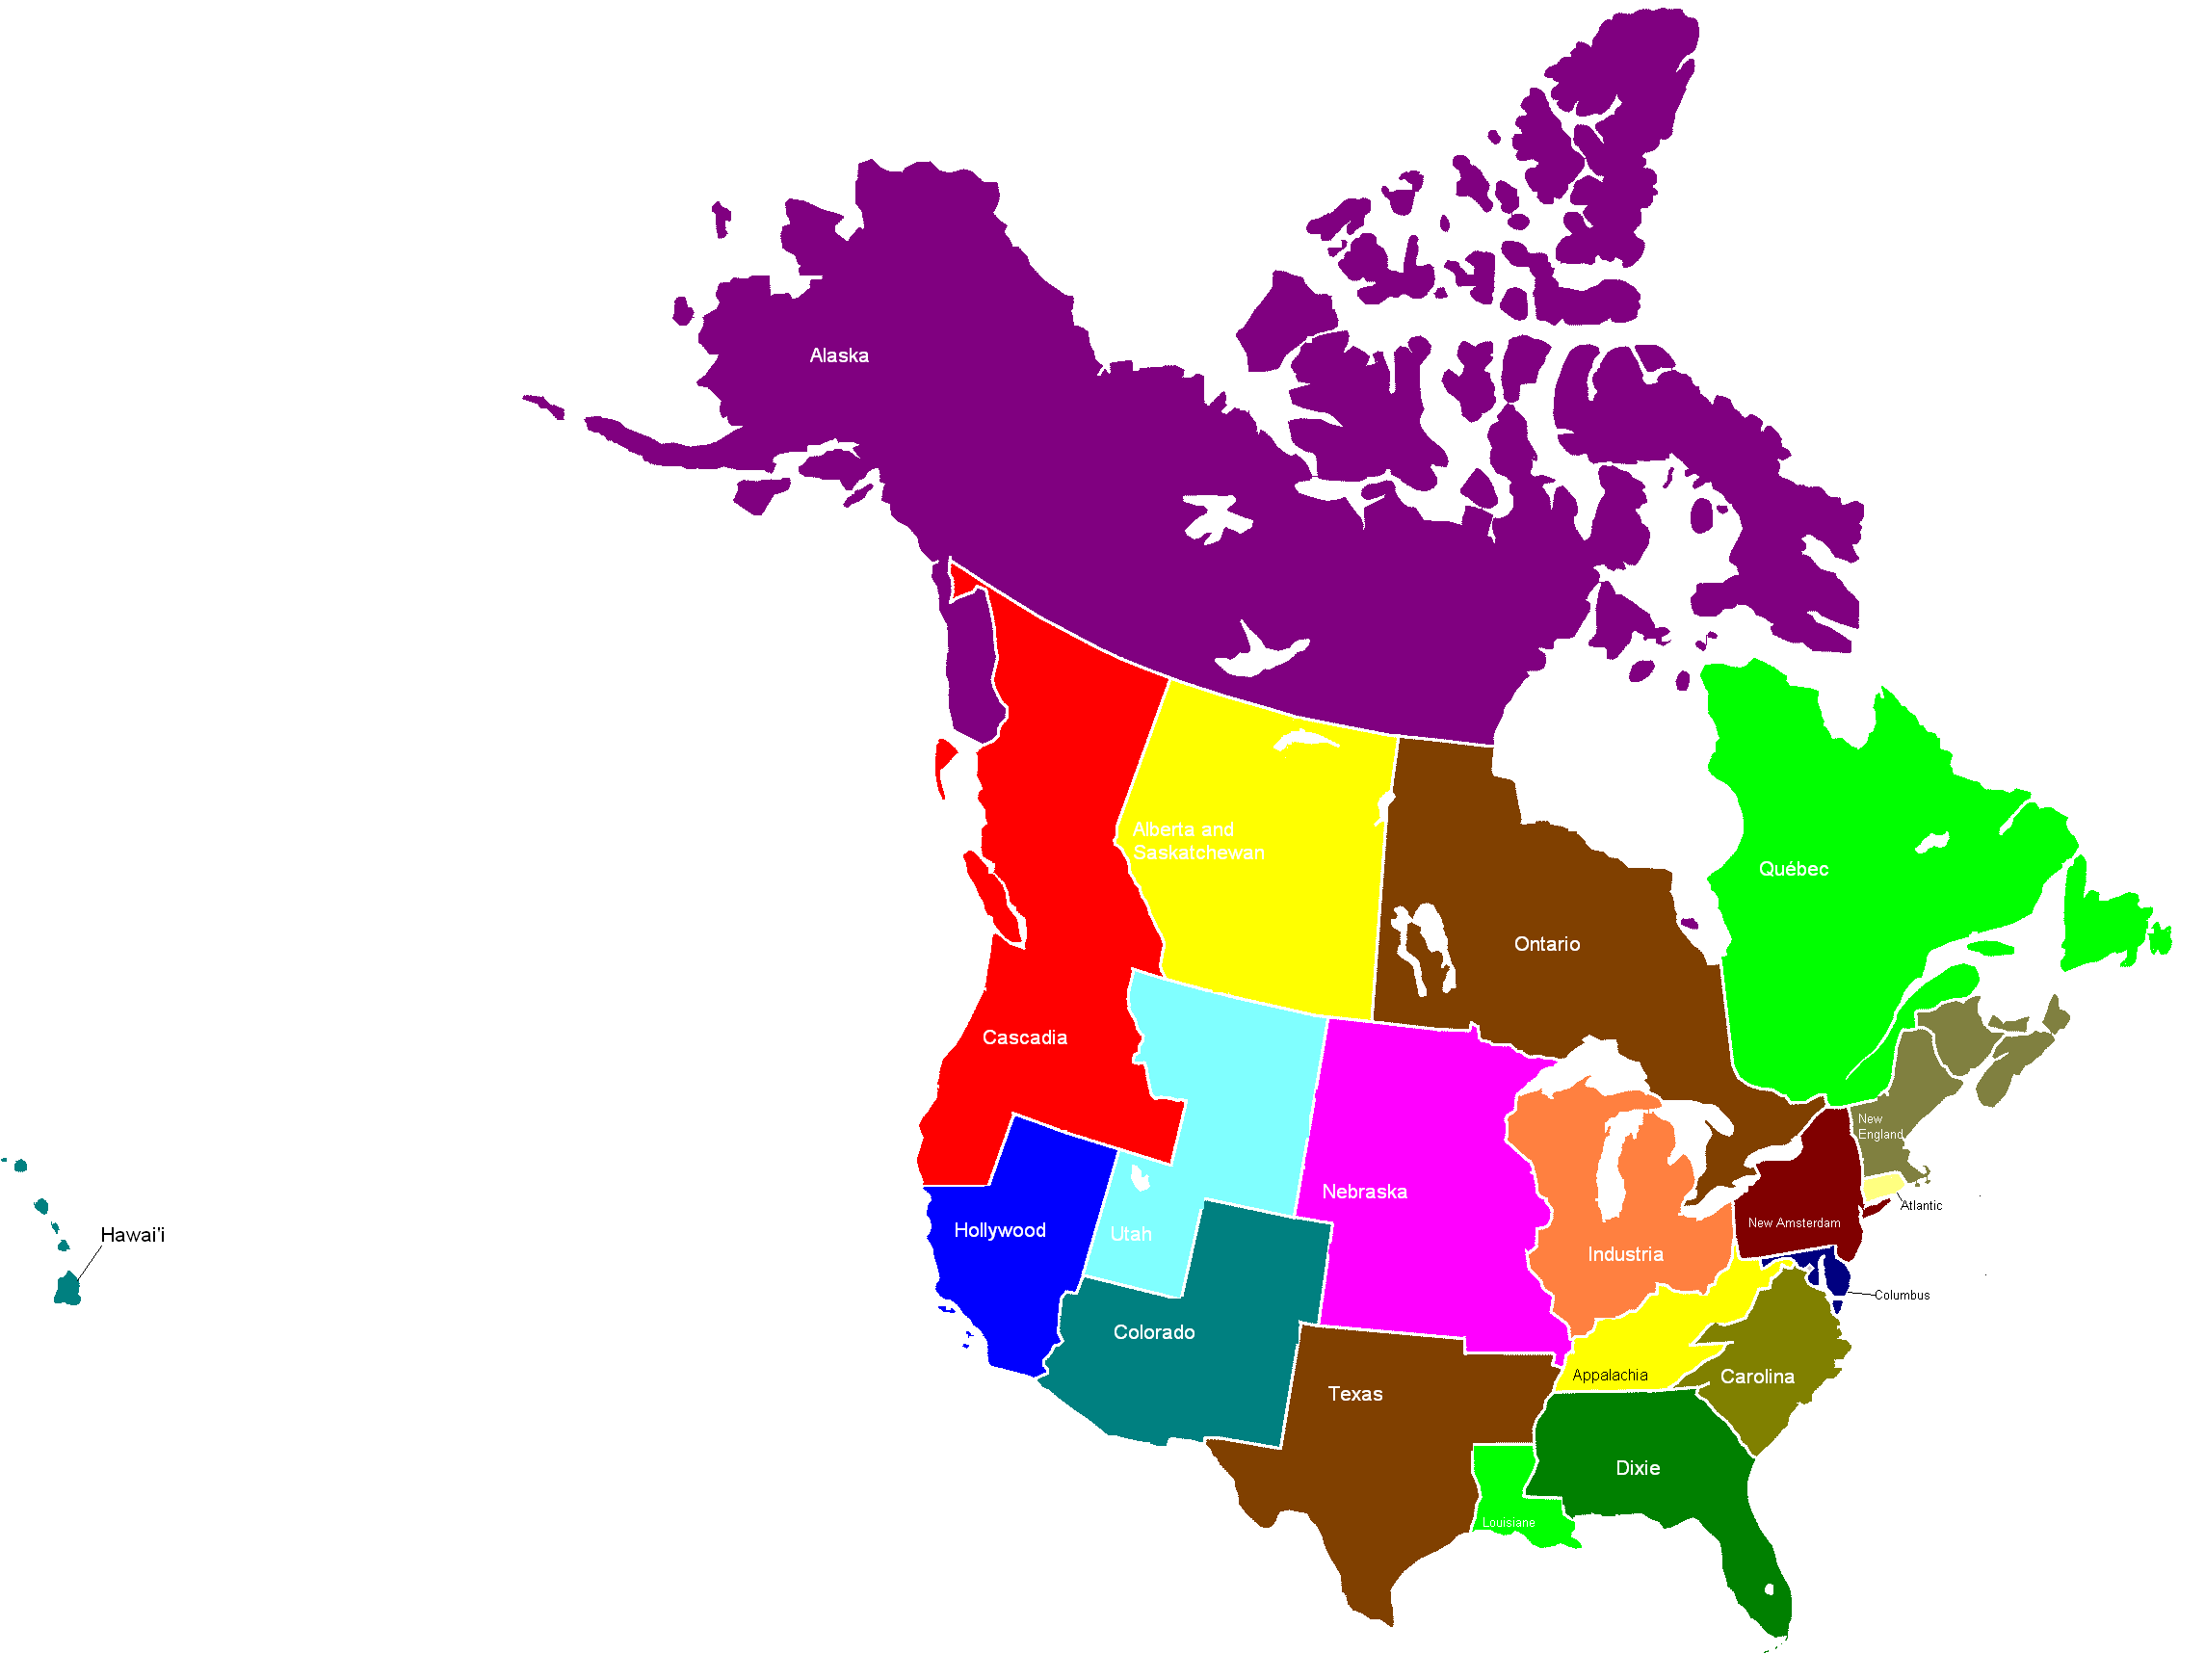 Best Images About Alternate North America Maps On Pinterest - Blank map of the united states wikipedia